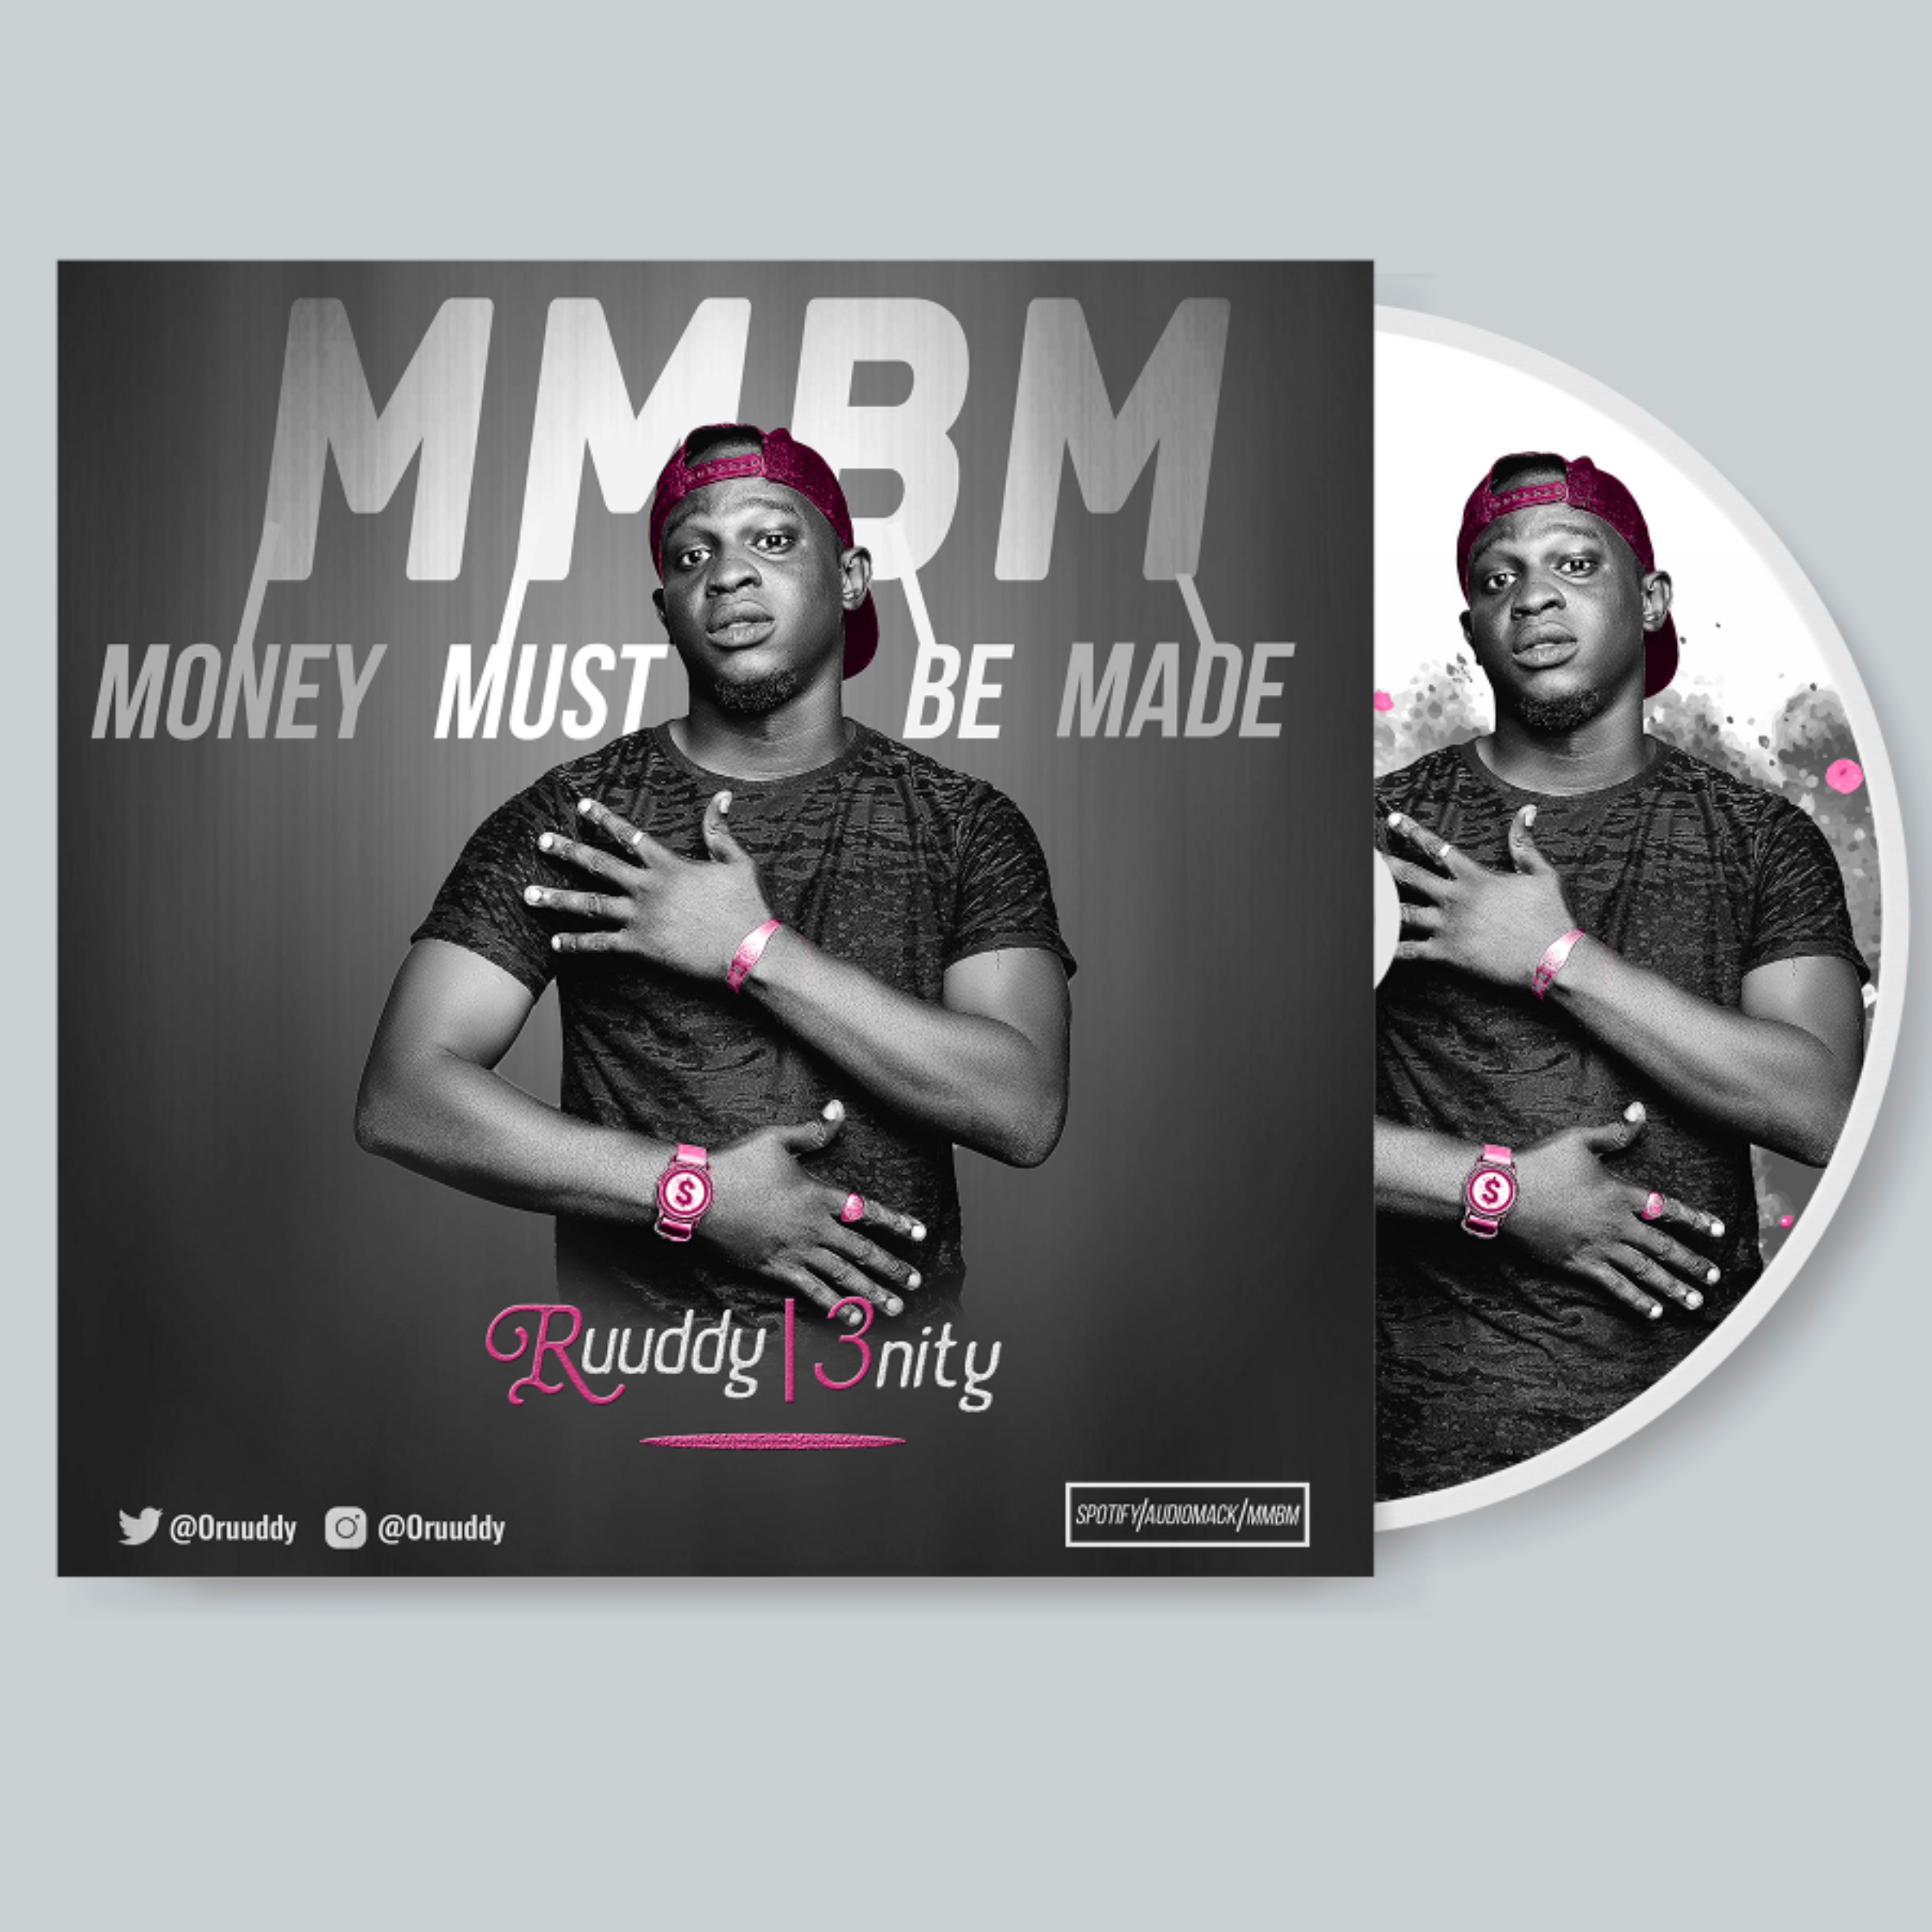 MMBM (MONEY MUST BE MADE) FT 3NITY